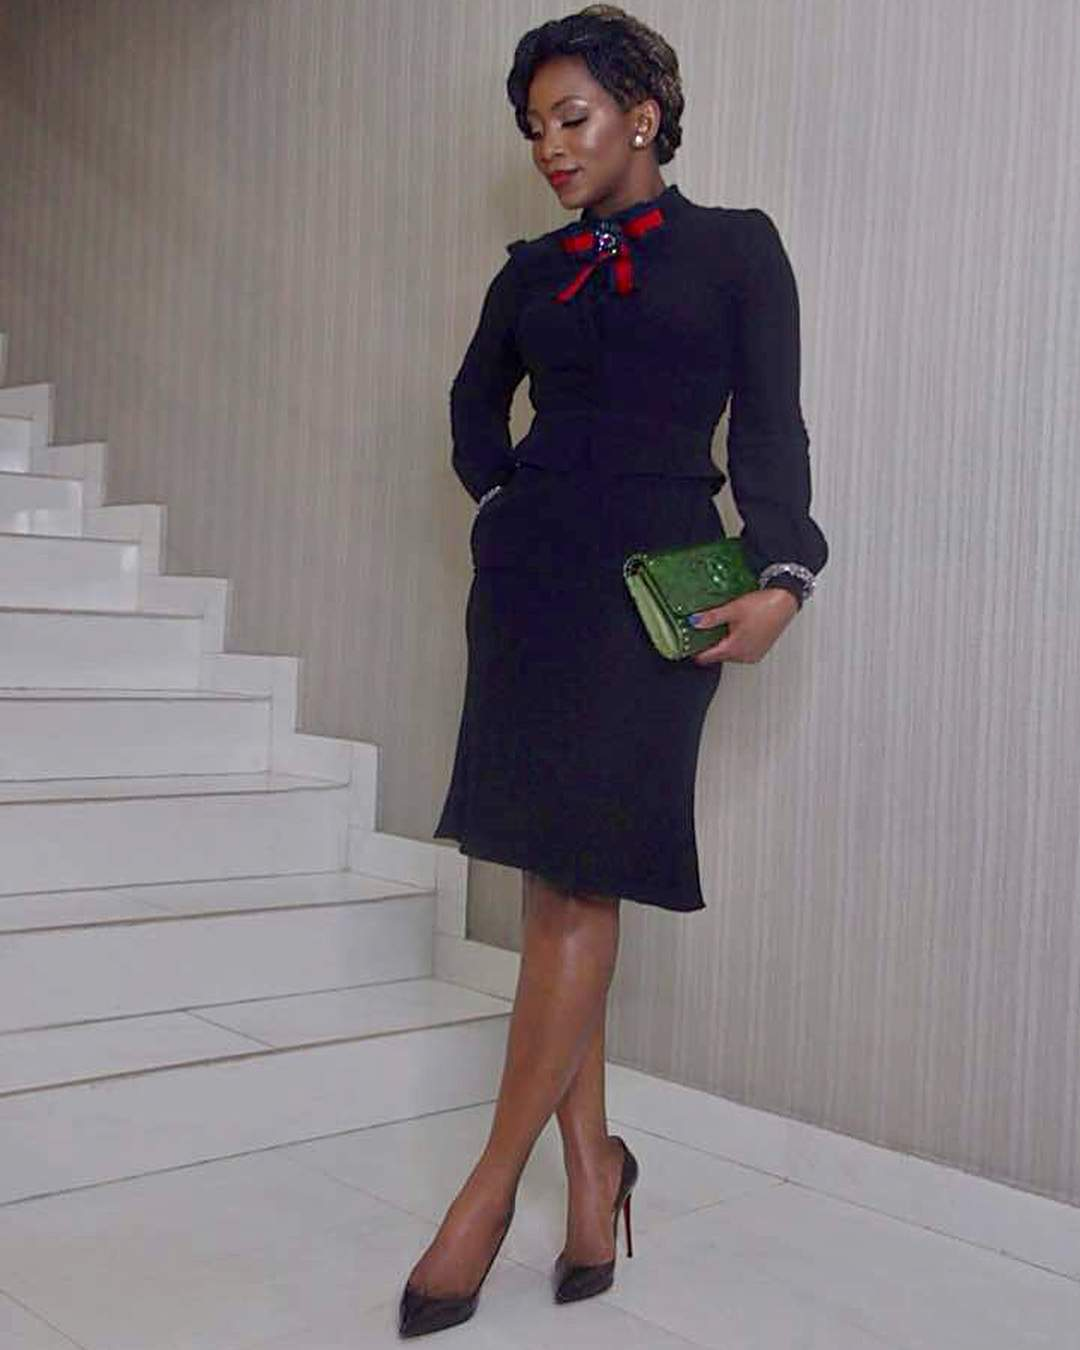 Genevieve Nnaji In A Knee Length Dress Photo Accelerate TV